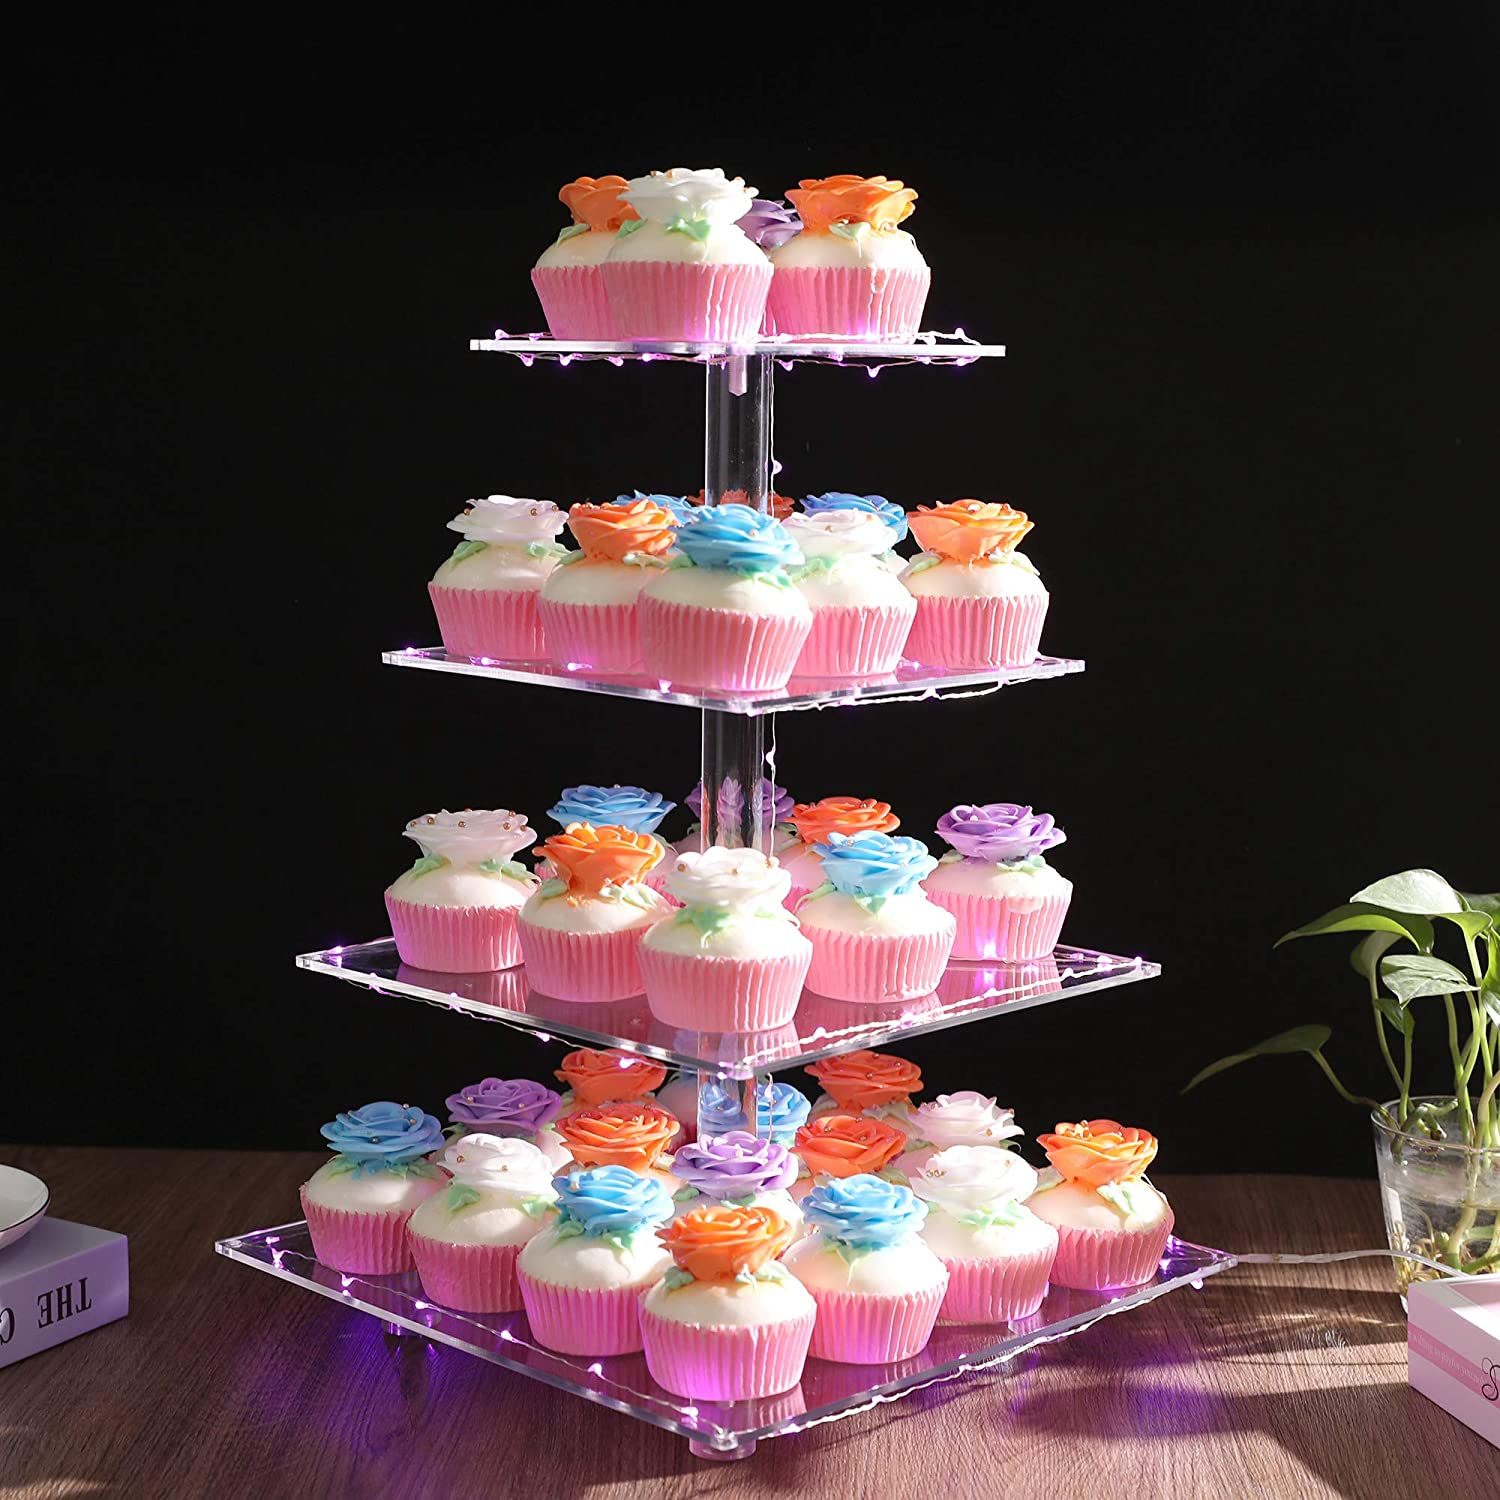 Jofave 4 supreme Tier Cupcake Stand Holder with Genuine Free Shipping L Premium Square